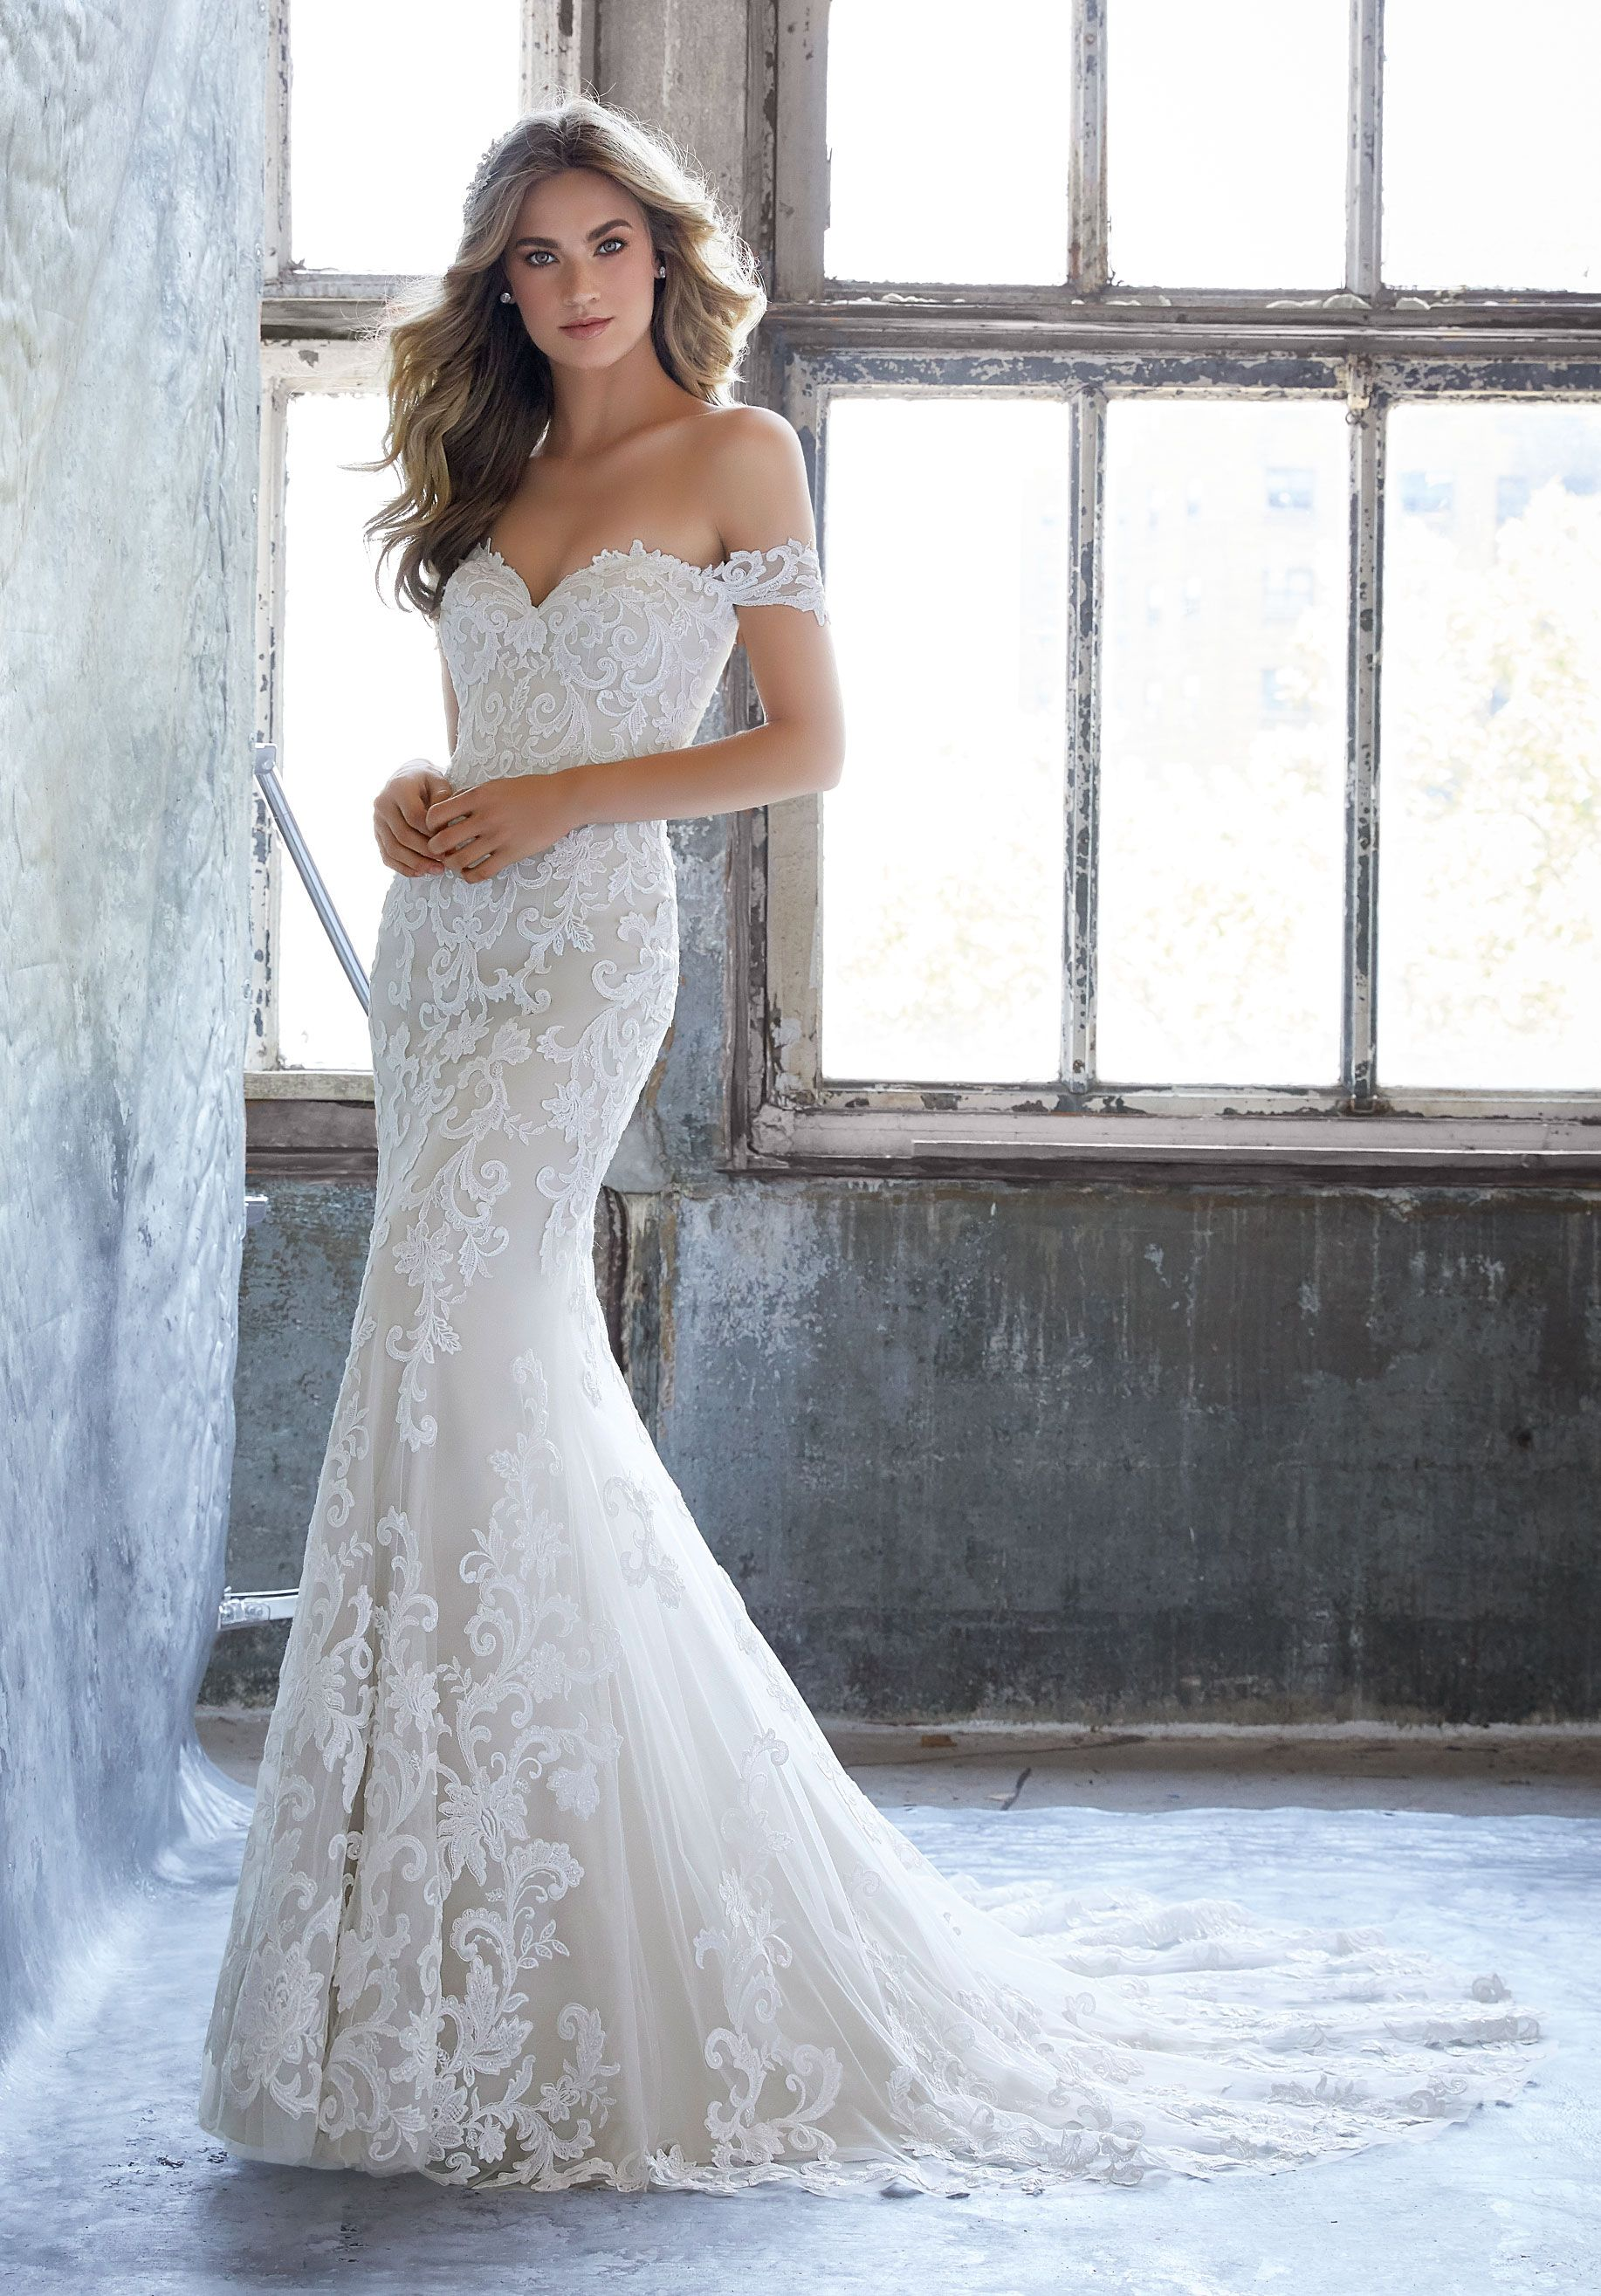 Frosted Lace Appliqués on Net. Available in Three Lengths: 55\